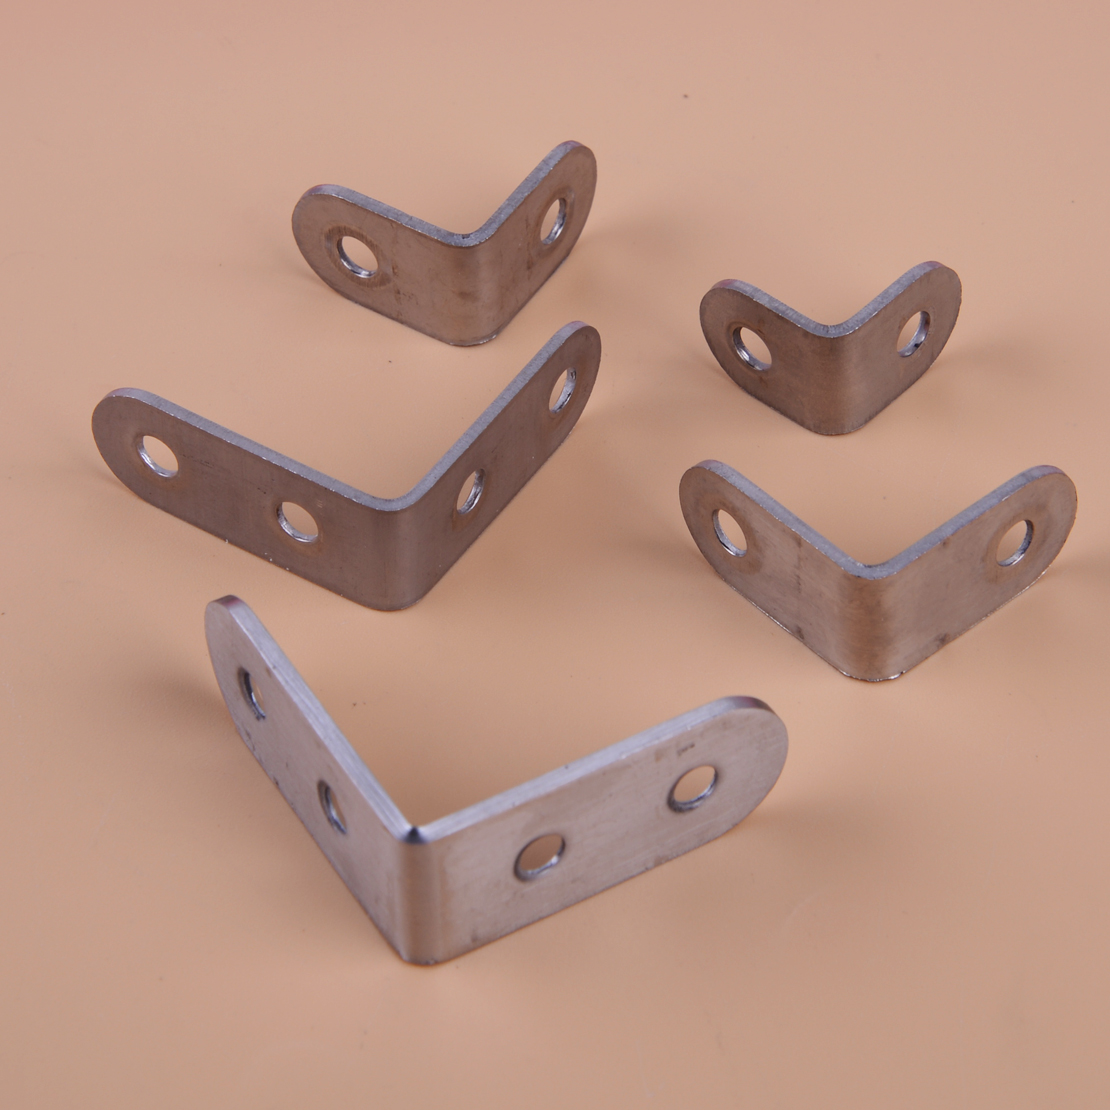 Nails Screws Fasteners Sourcing Map 30pcs Angle Bracket